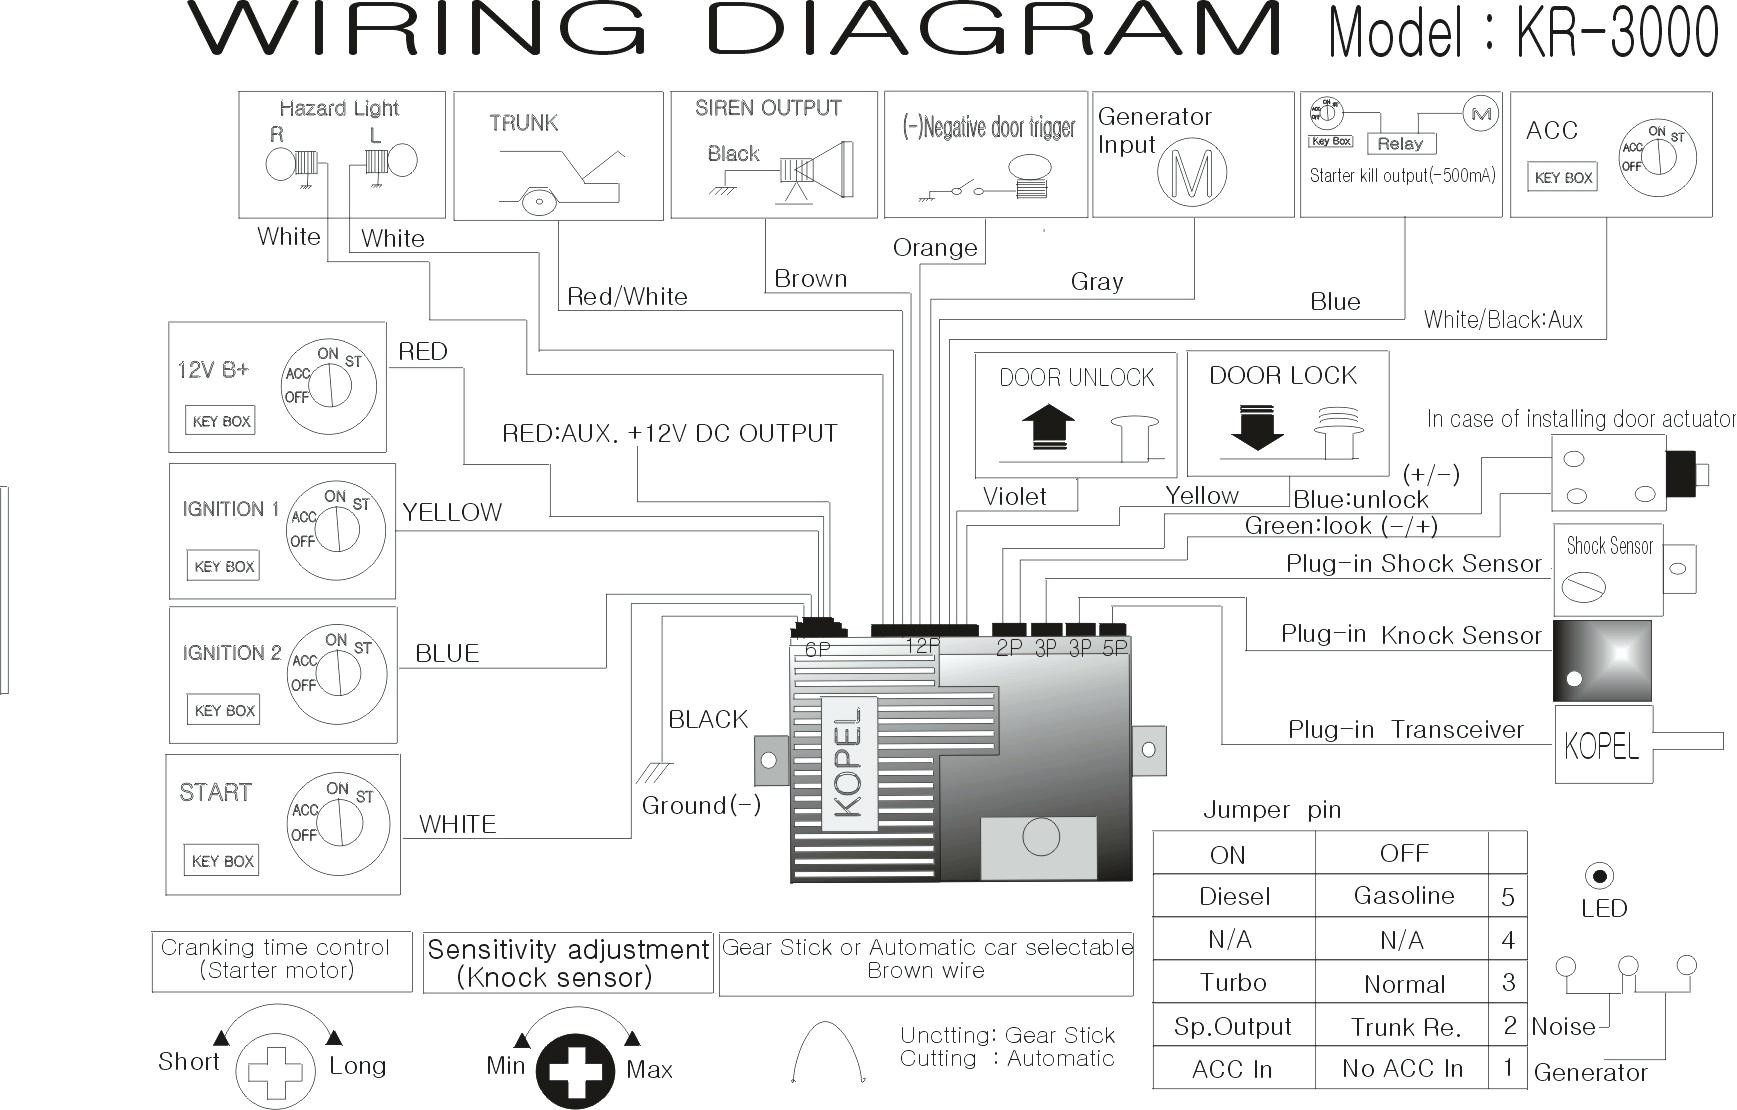 adt wiring diagram Collection-Adt Alarm Wiring Diagram New Adt Alarm Wiring Diagram Luxury Accenta Alarm Wiring Diagram Wiring 12-n